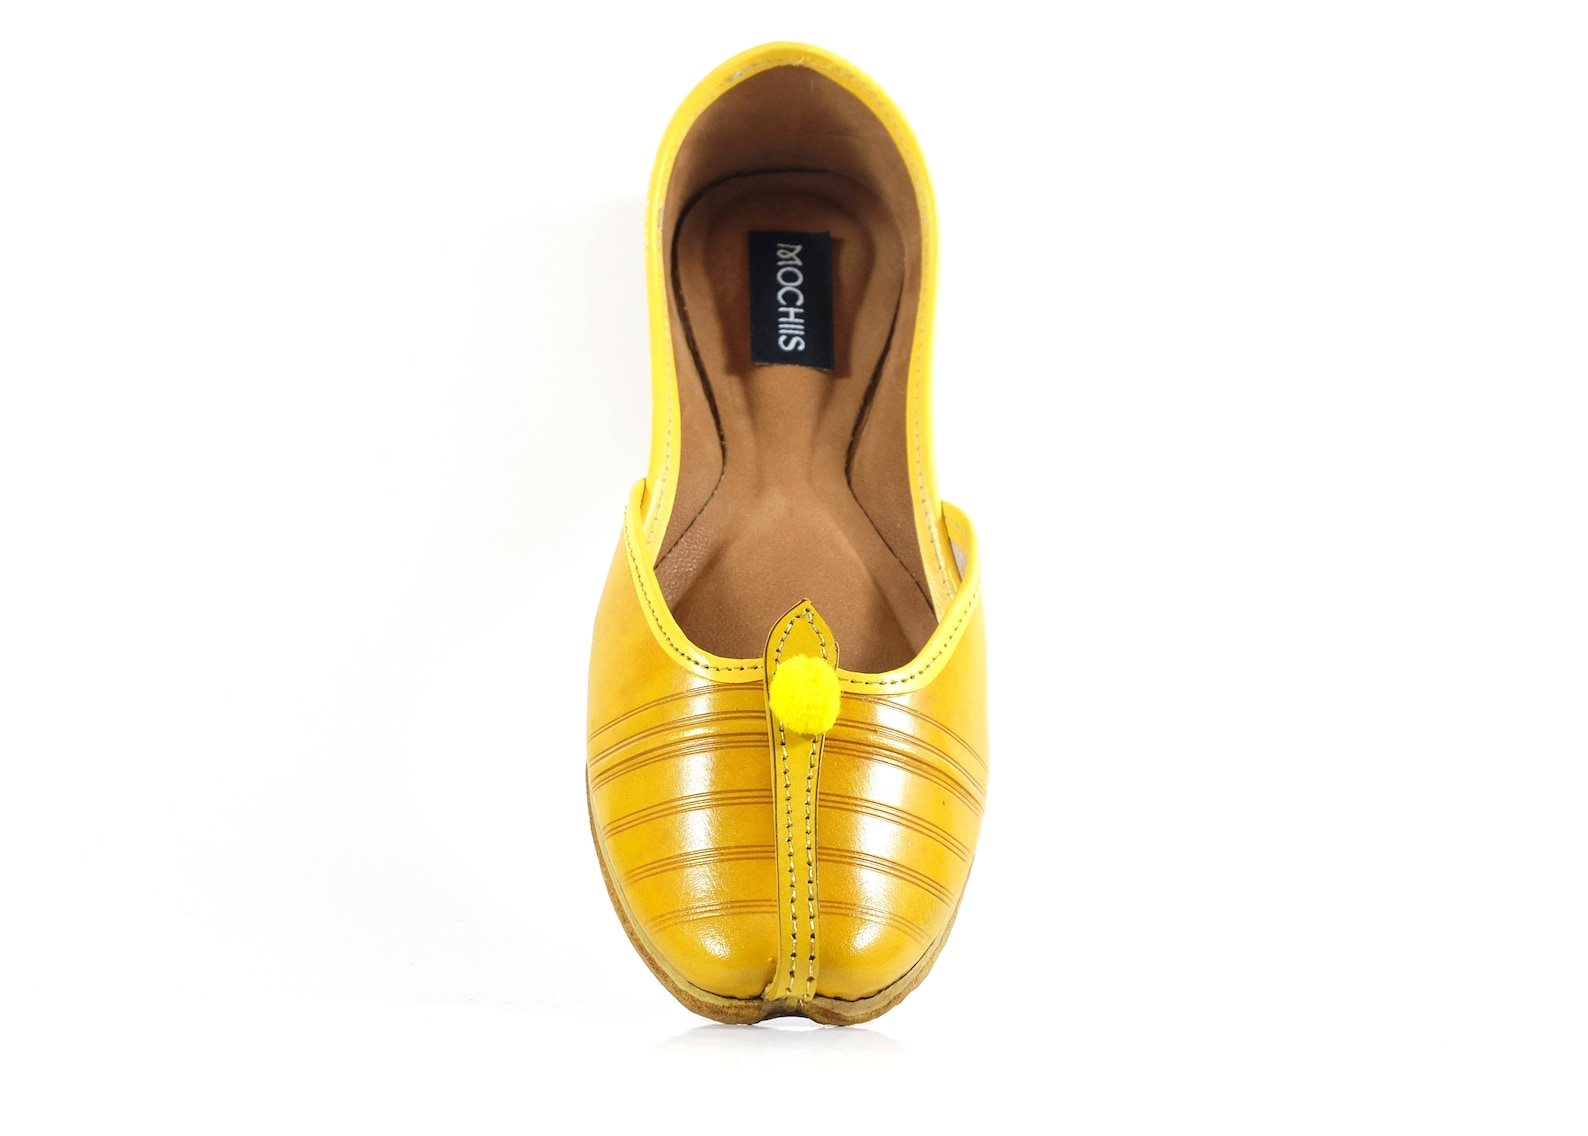 handmade classic leather ballet flat shoes - brown and yellow - with pom-pom details - jutti / khussa / mojari